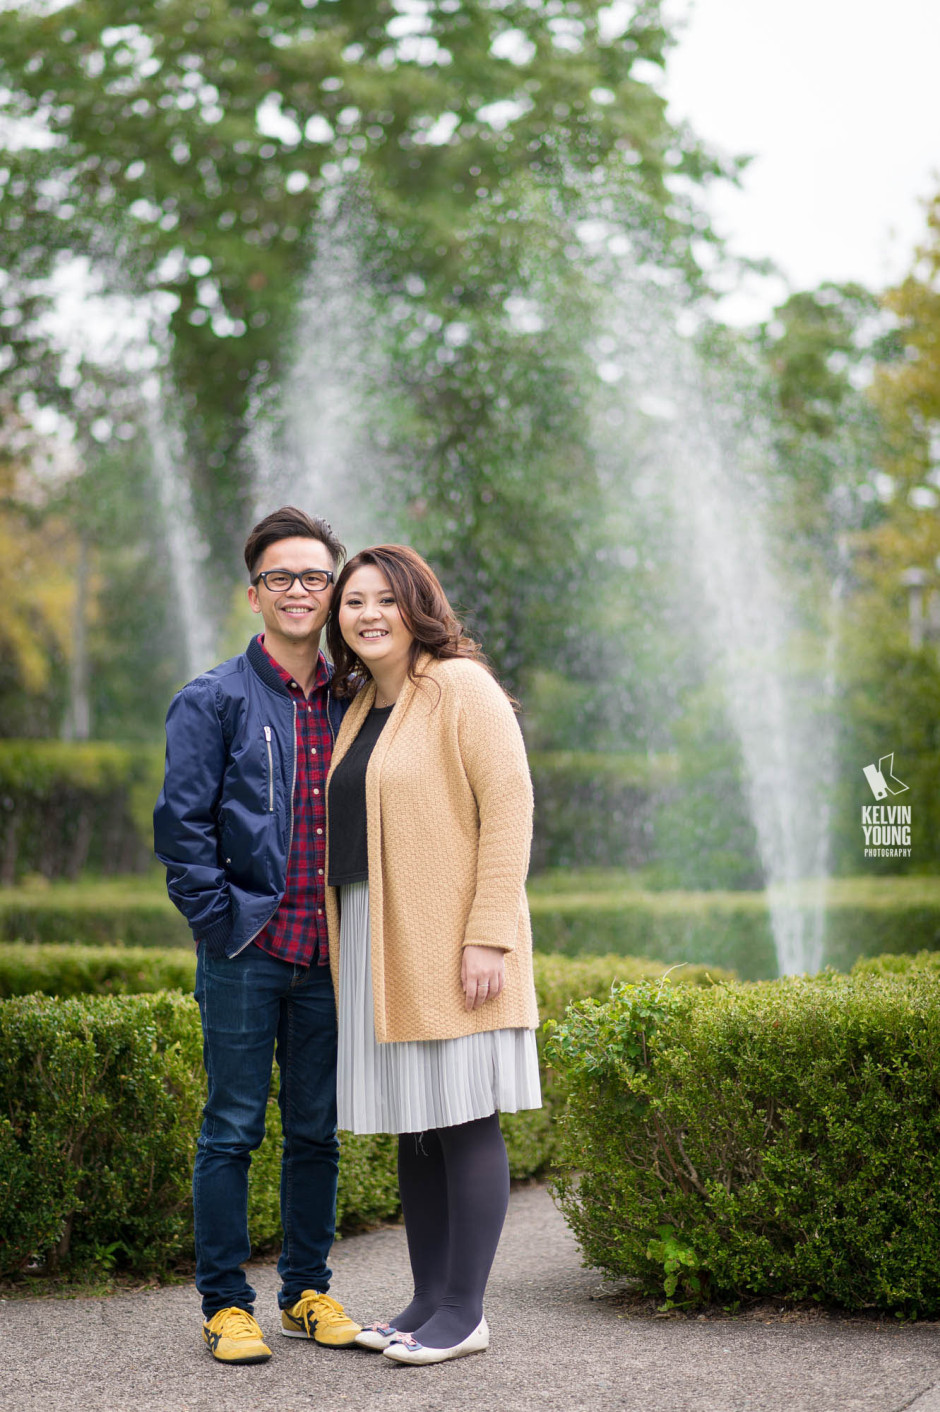 KYP15-Miranda-Wylie-Toronto-Engagement-Photography-Session-02